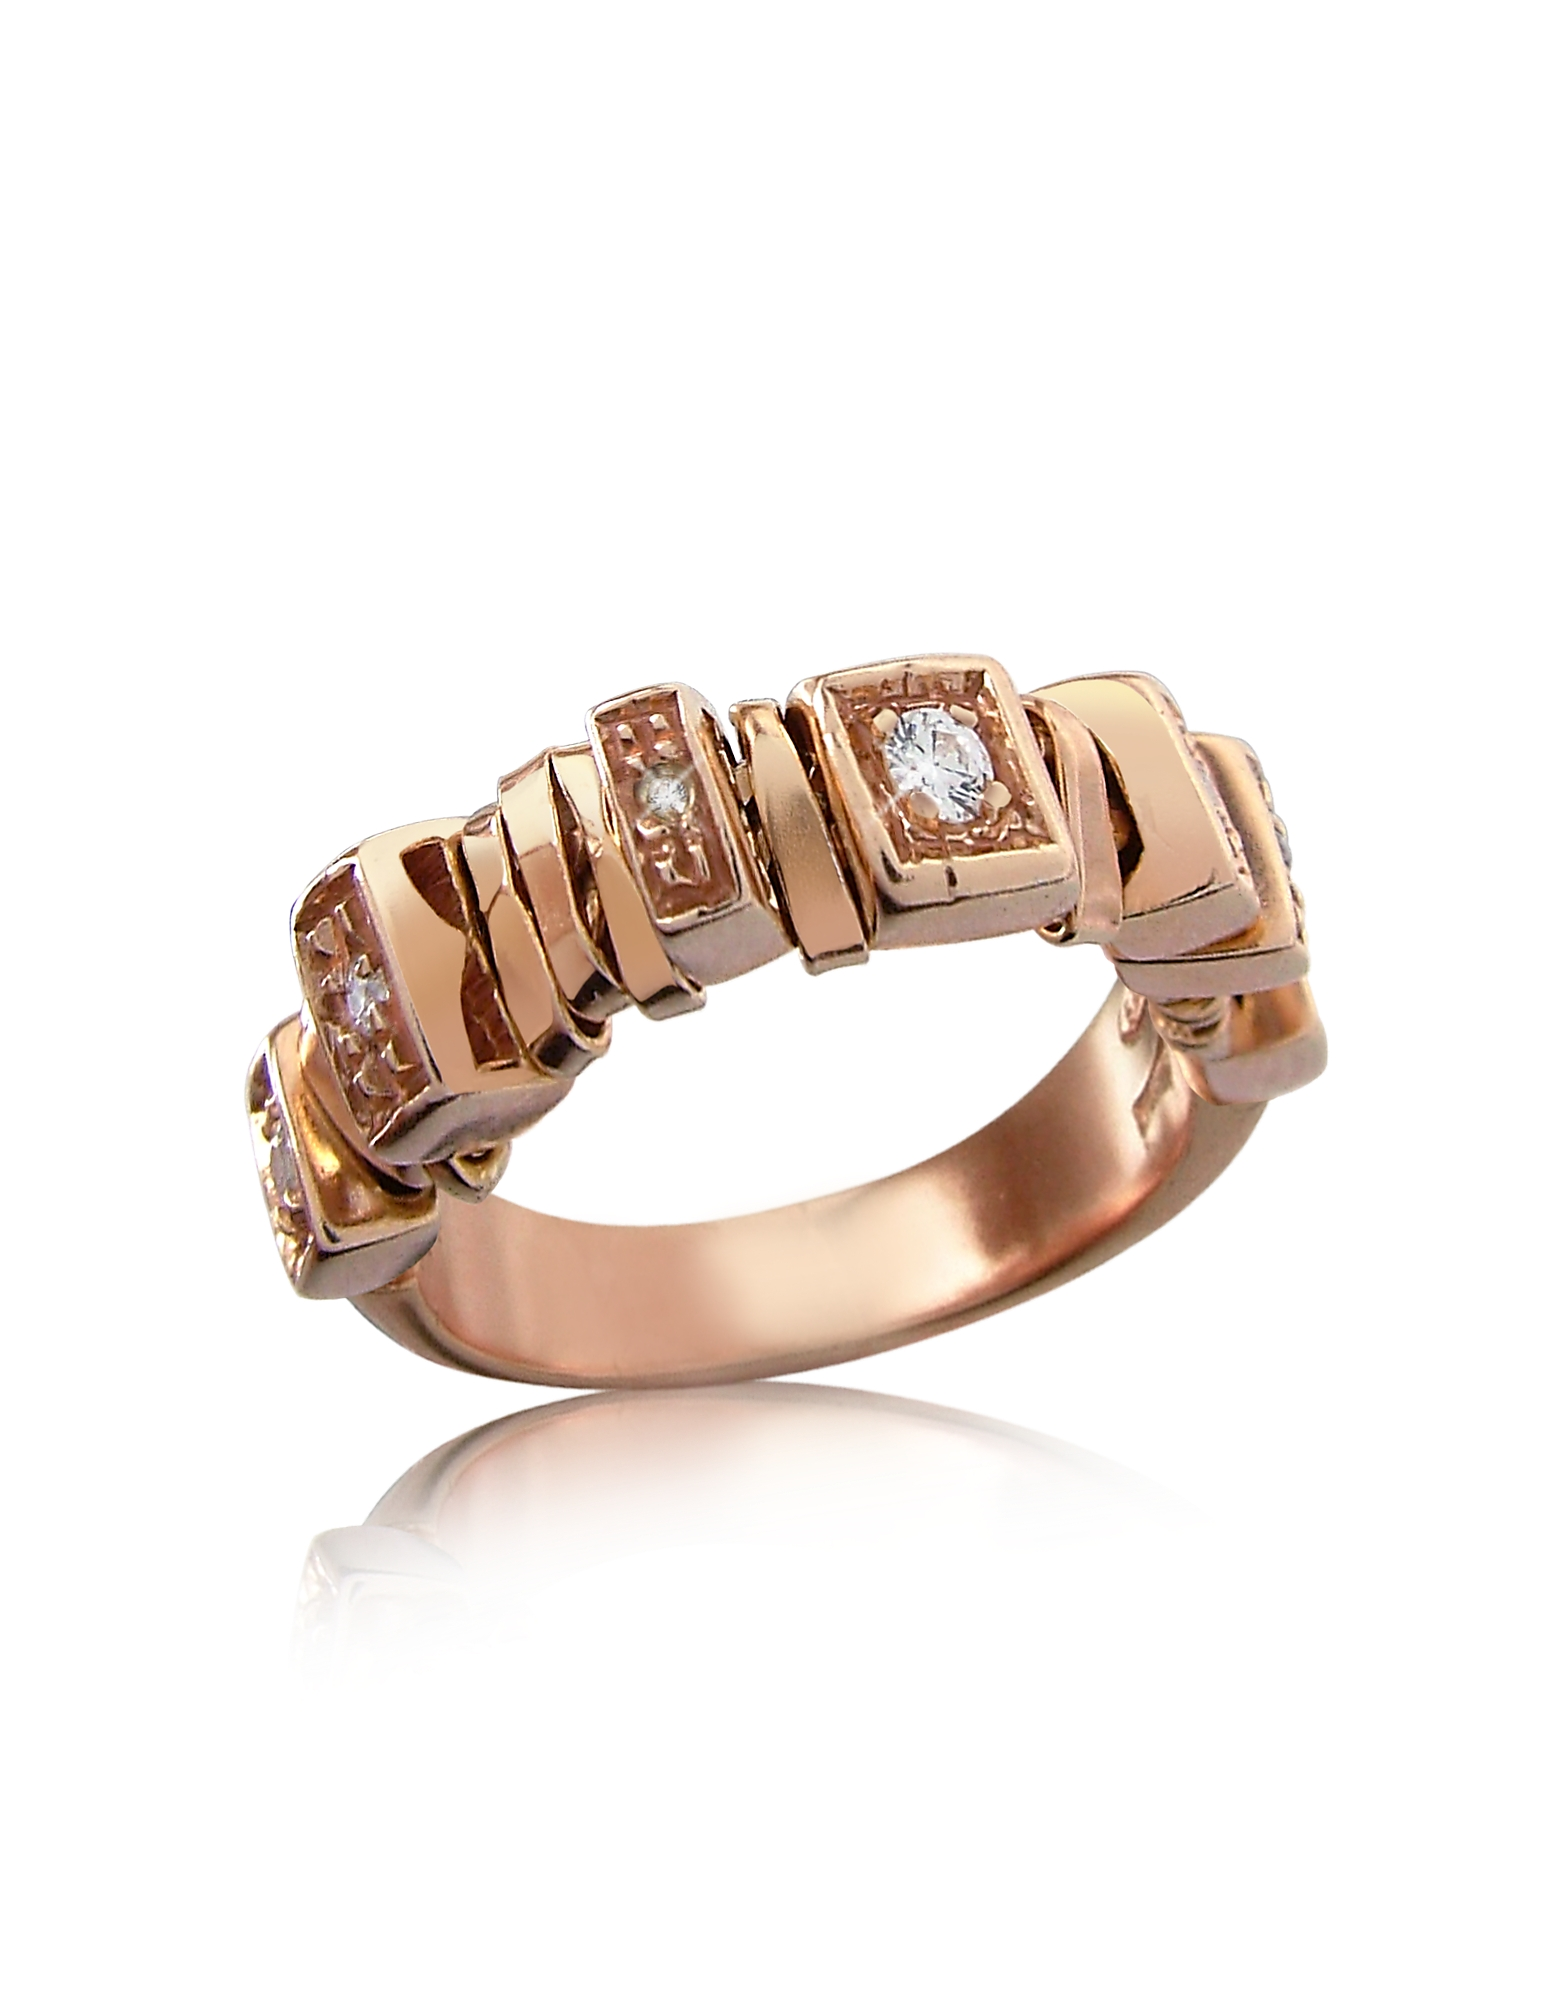 Orlando Orlandini Rings, Sole - Diamond 18K Rose Gold Band Ring